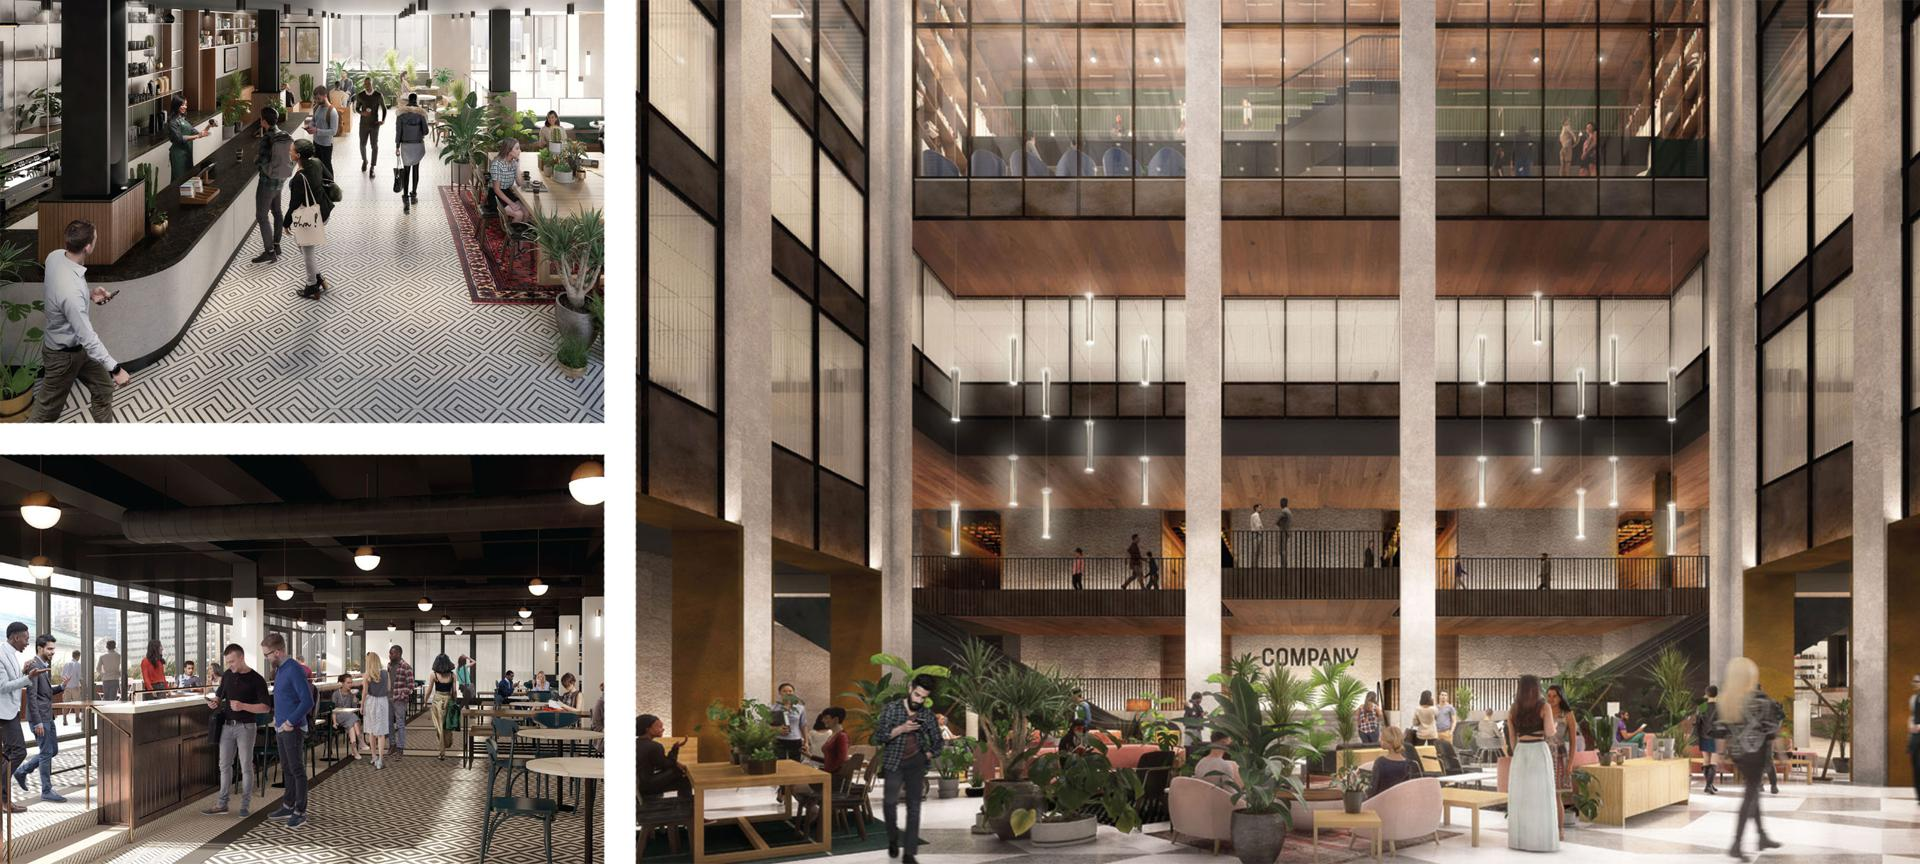 Company is renovating the entire building at 335 Madison Avenue to include 250,000 square feet of startup office space, 700,000 square feet of space for bigger companies and 150,000 square feet for amenities including a lobby coffee bar and